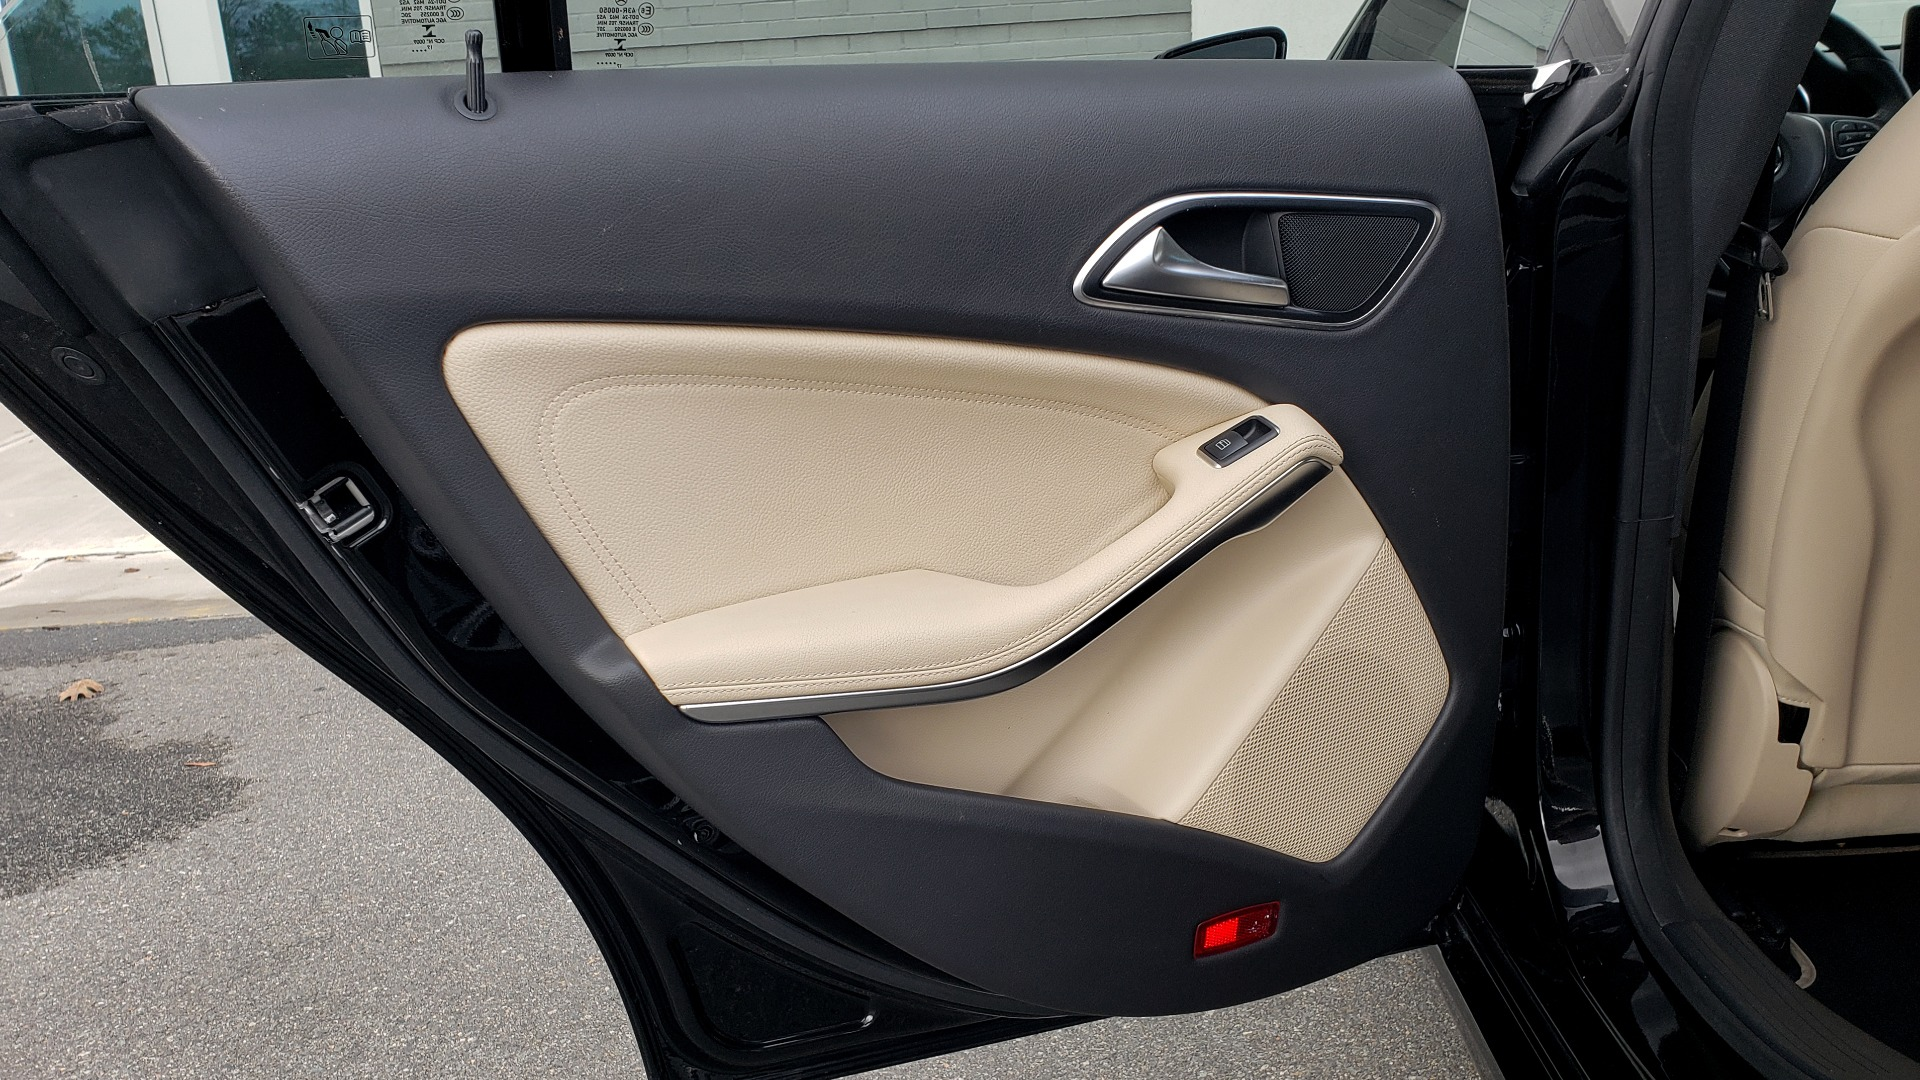 Used 2018 Mercedes-Benz CLA 250 / HEATED SEATS / BSA / APPLE CARPLAY / ANDROID AUTO / 18IN WHEEL for sale $24,195 at Formula Imports in Charlotte NC 28227 55